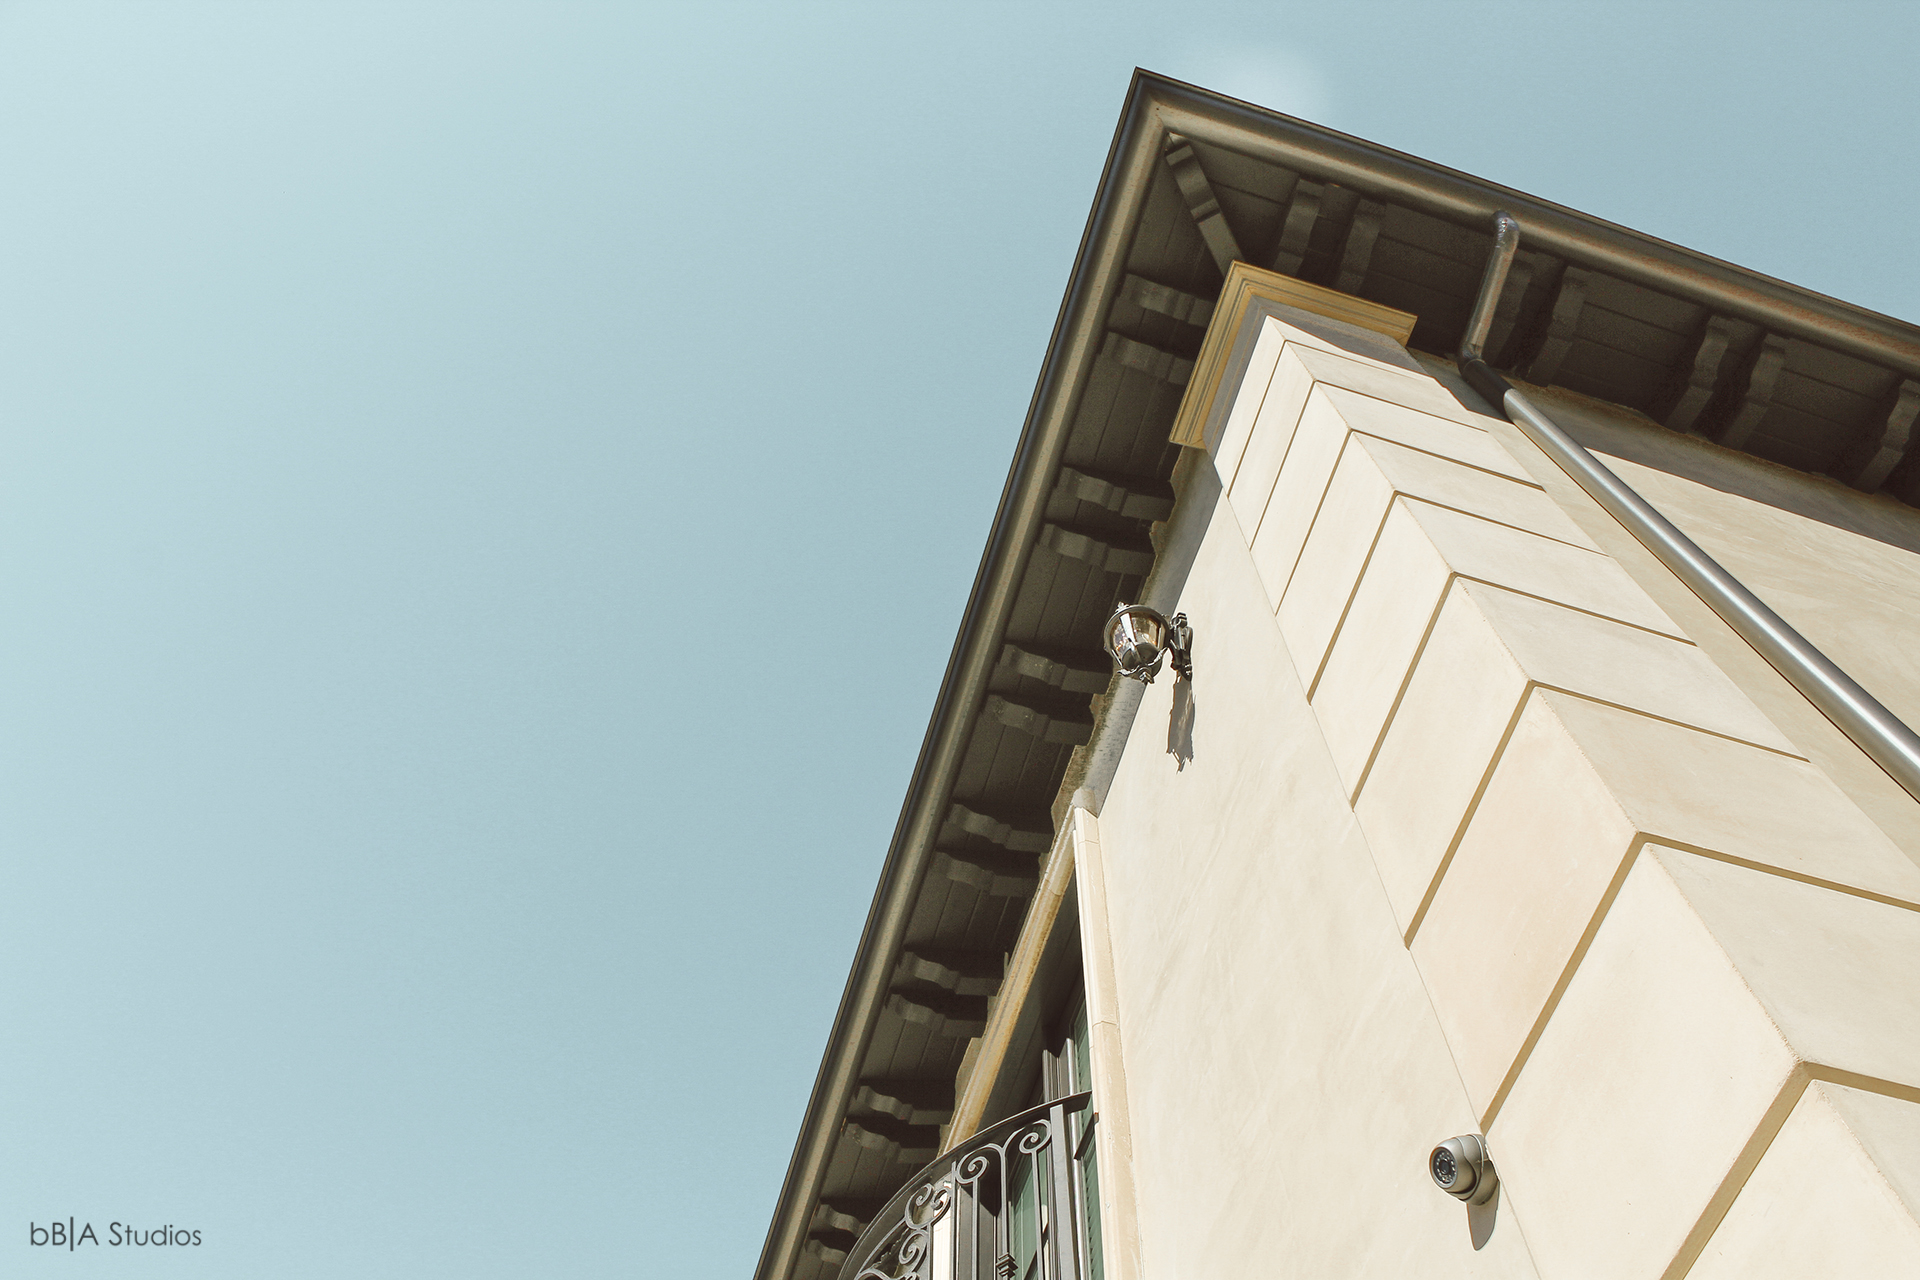 Roof and awning detail